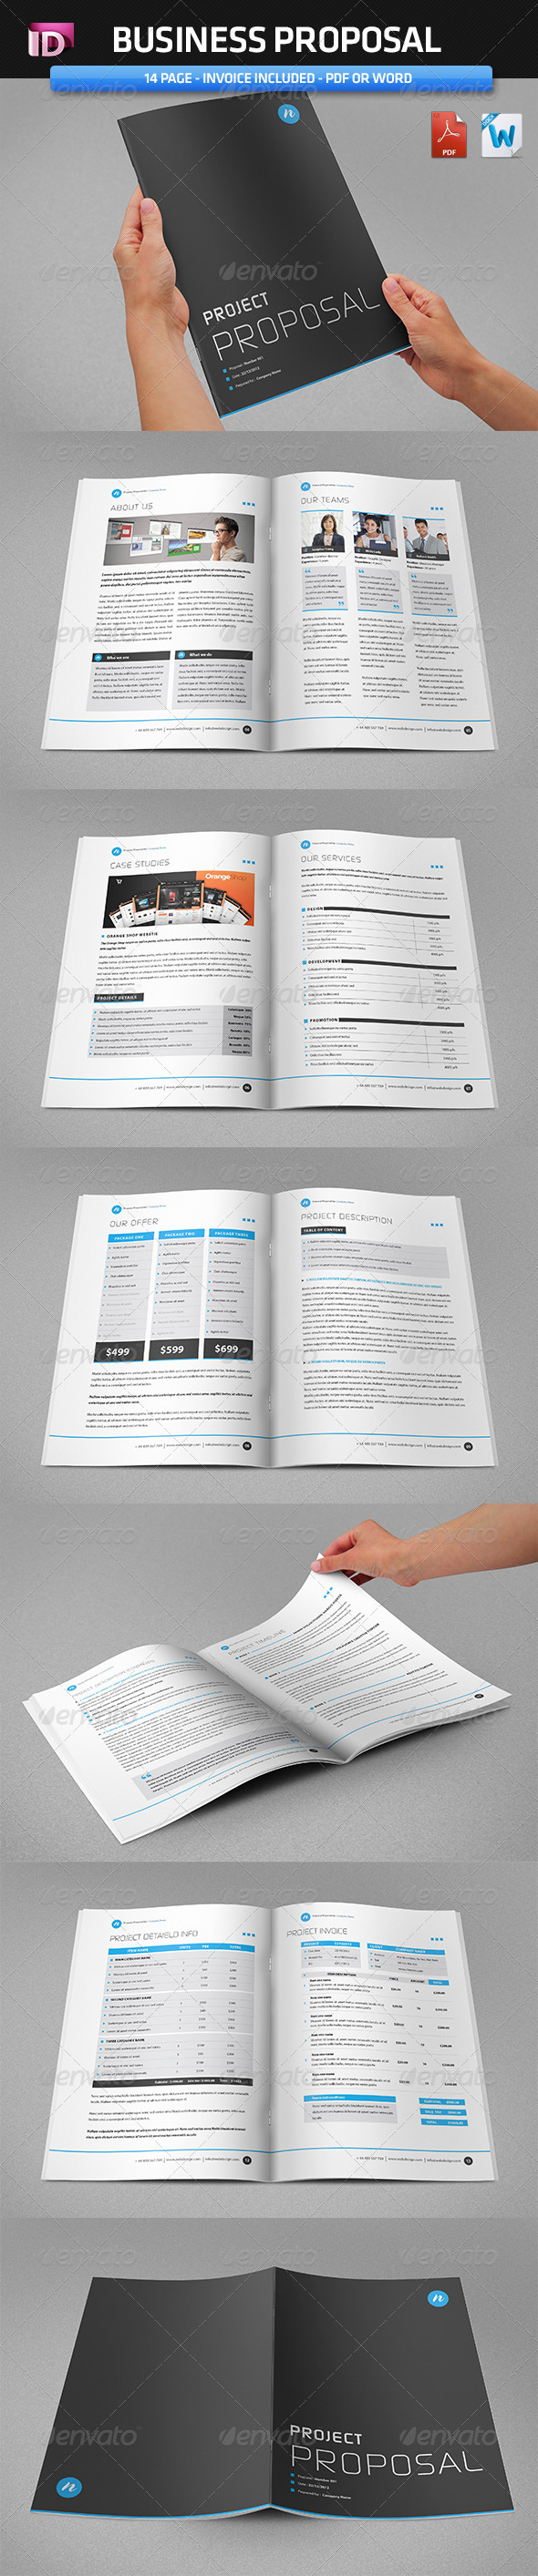 GraphicRiver Proposal Template Vol 1 3694144